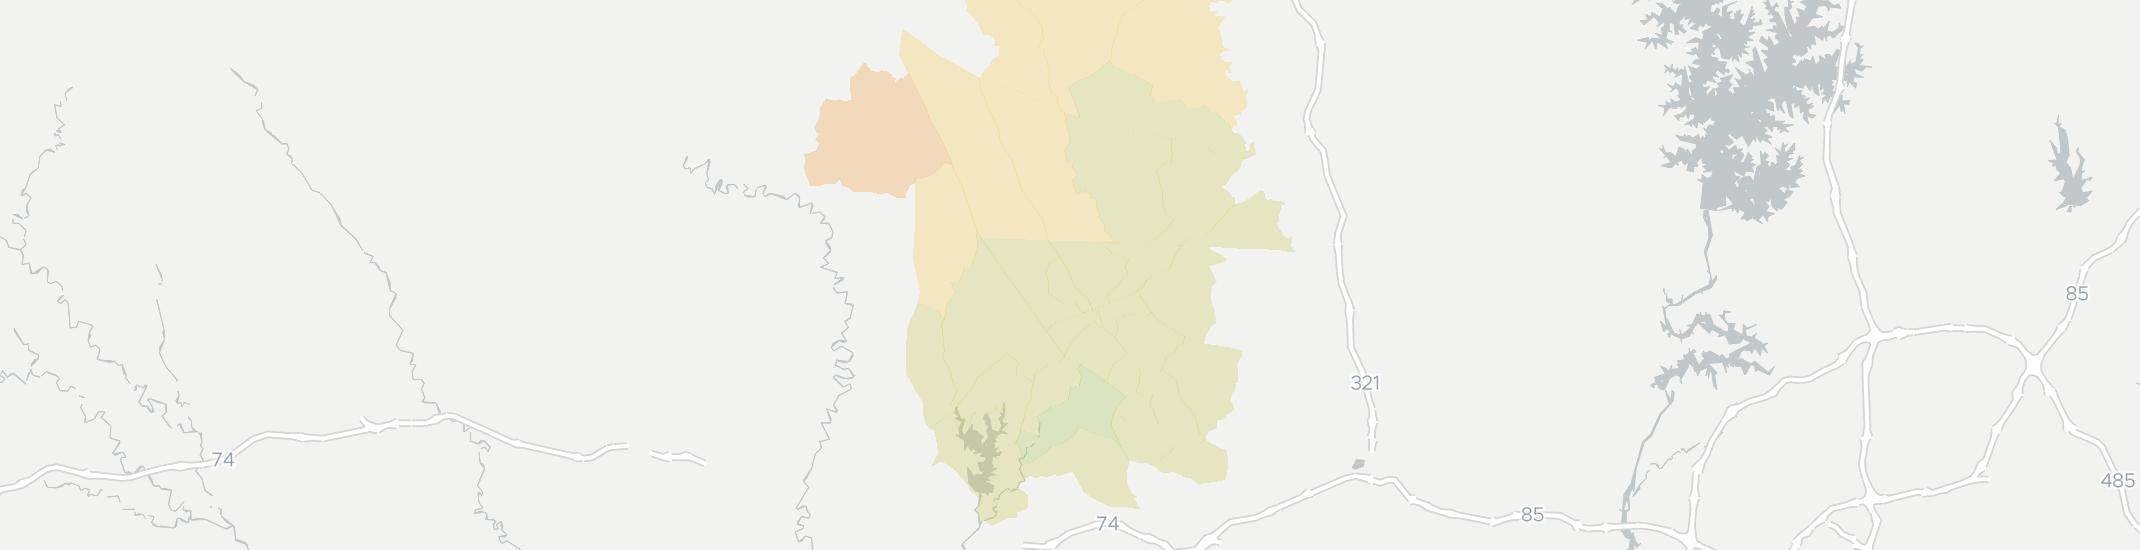 Cherryville Internet Competition Map. Click for interactive map.